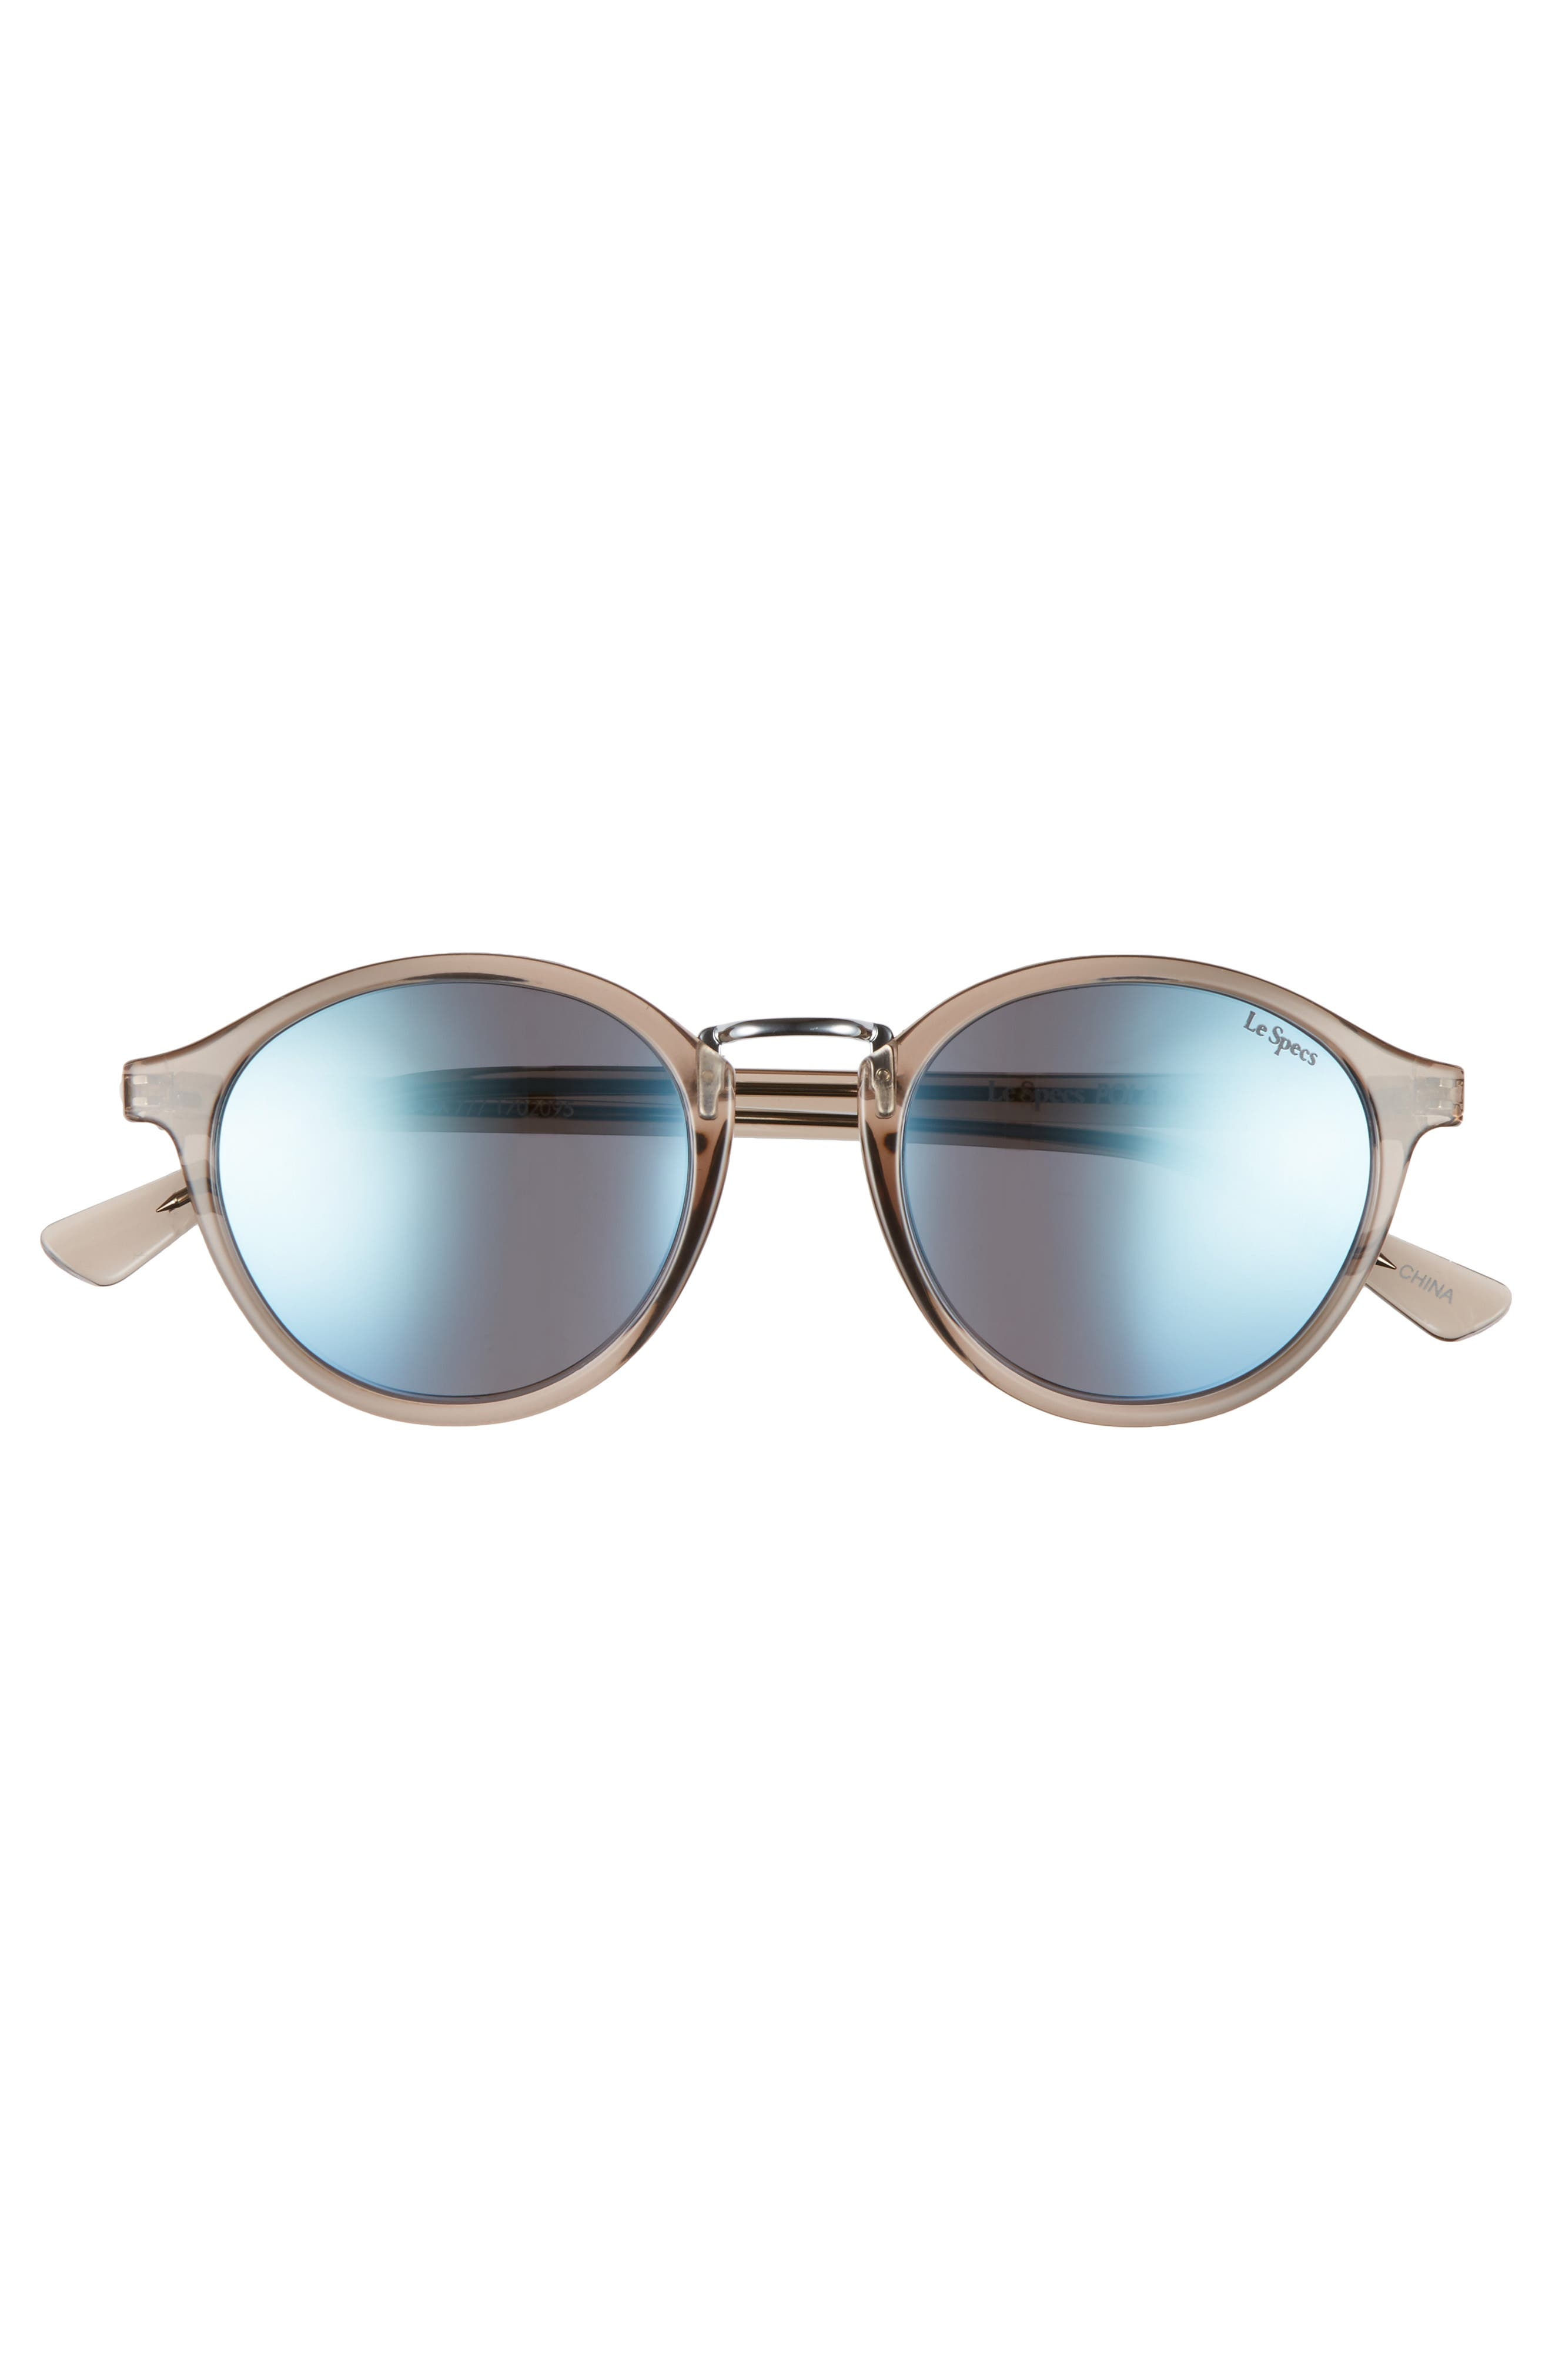 Paradox 49mm Oval Sunglasses,                             Alternate thumbnail 6, color,